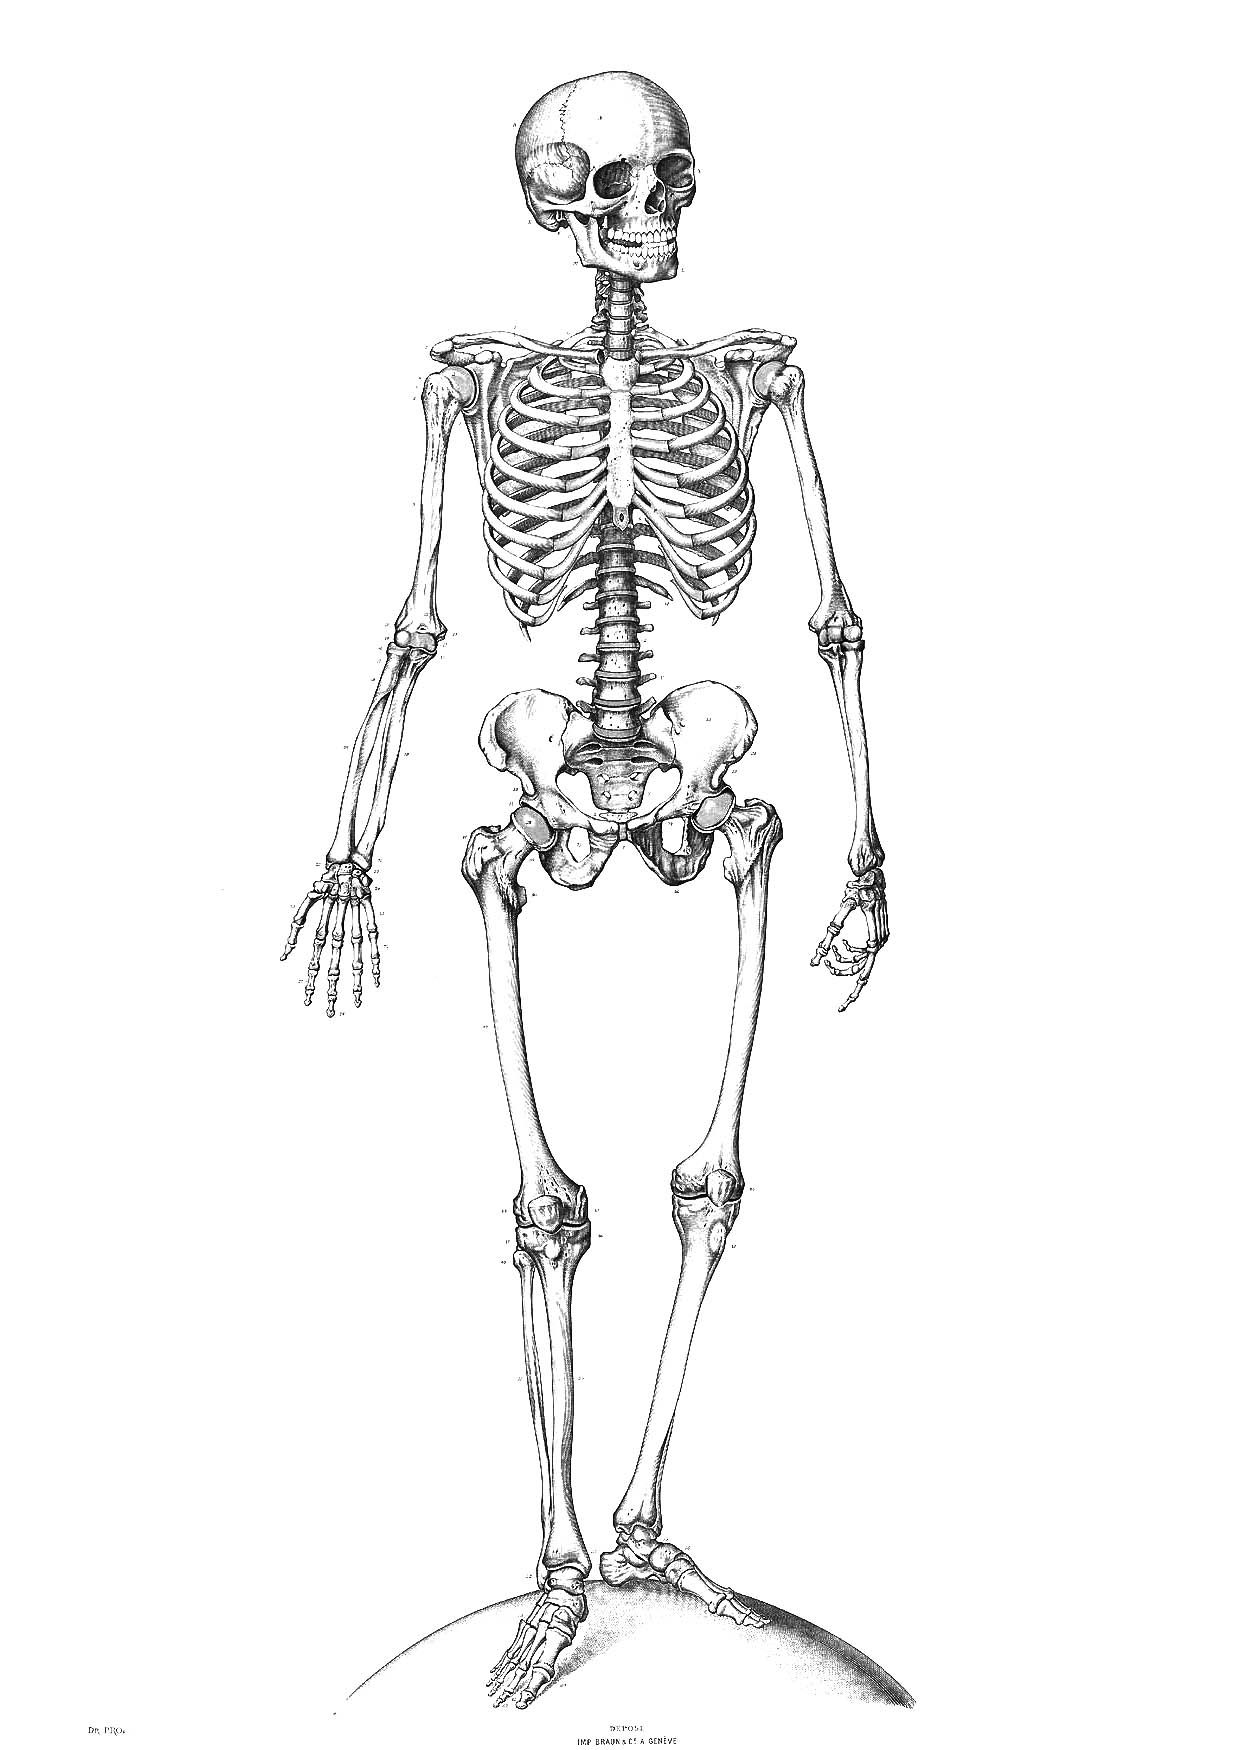 Free Printable Skeleton Coloring Pages For Kids | Classical - Free Printable Skeleton Coloring Pages